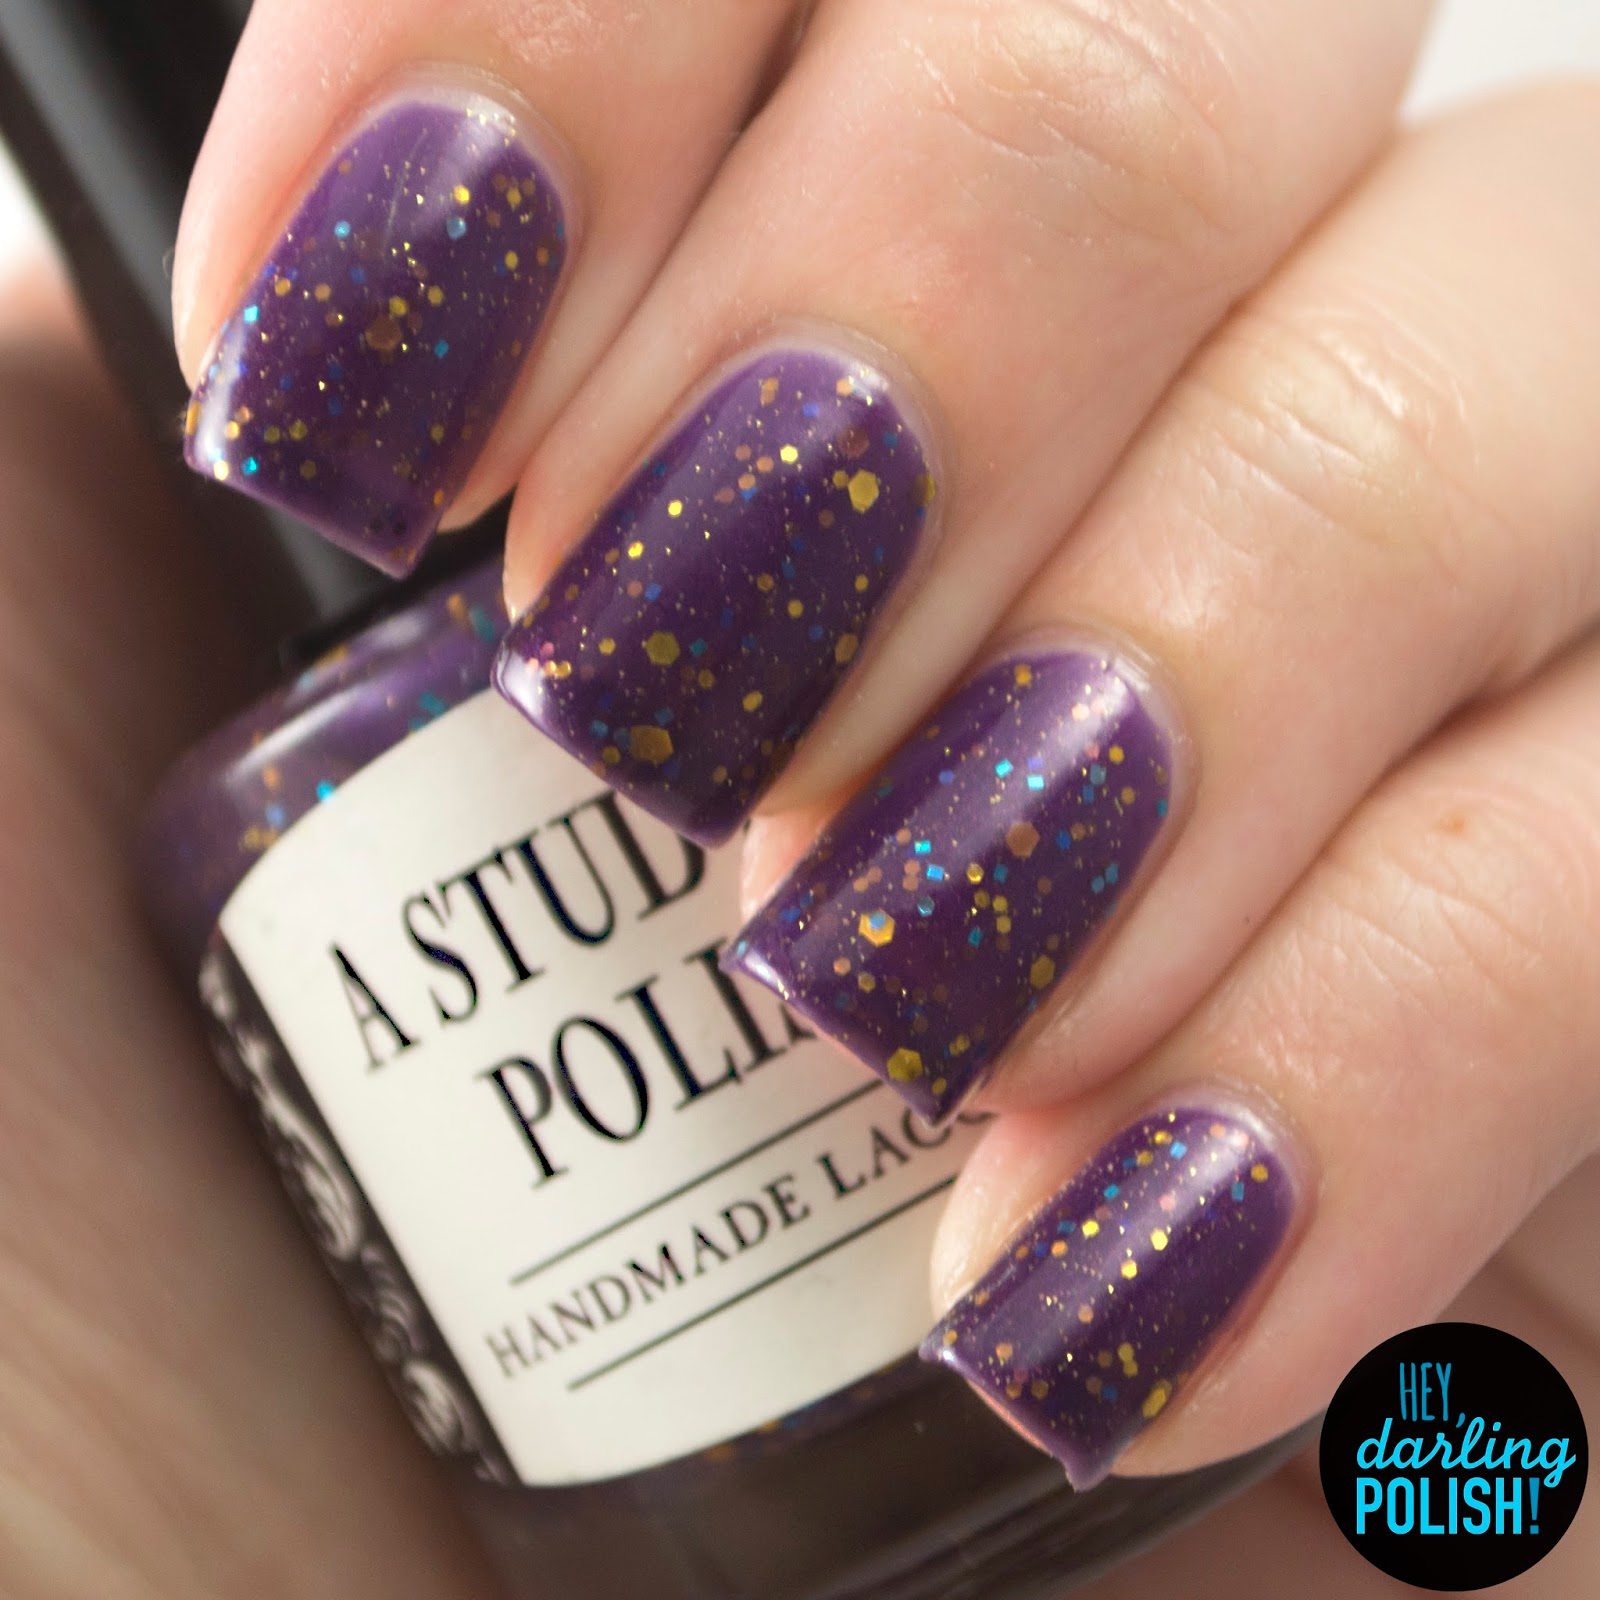 gold, blue, consulting detective, nails, nail polish, polish, indie, indie polish, indie nail polish, purple, glitter, glitter crelliy, a study in polish, hey darling polish